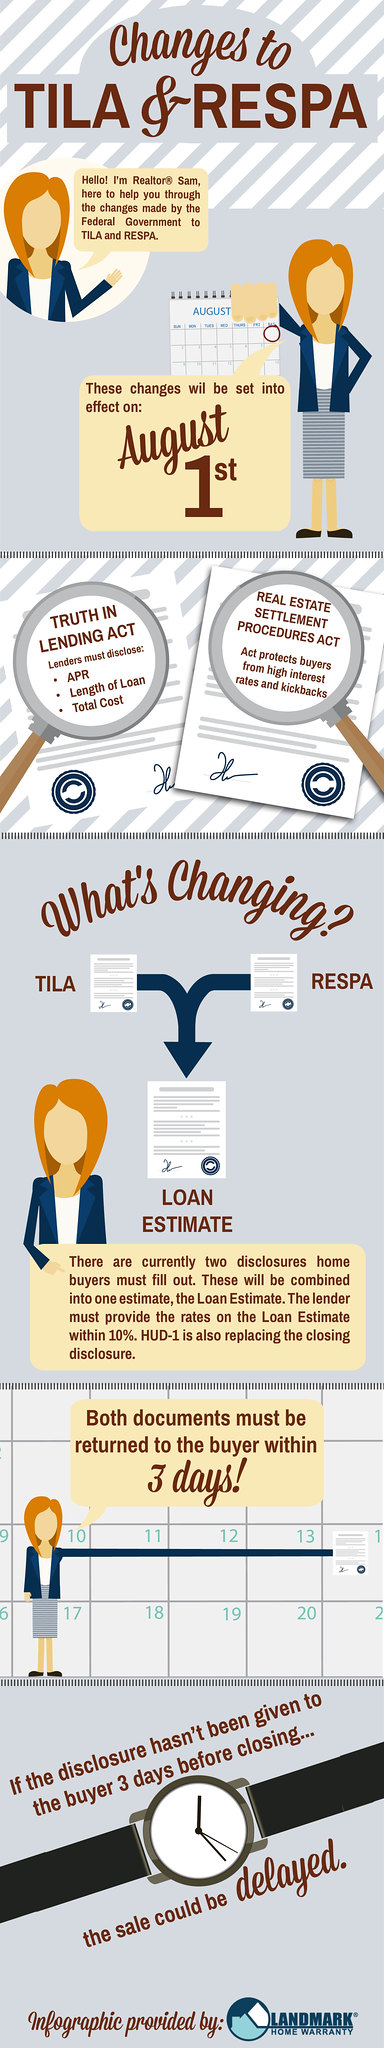 Changes to TILA RESPA